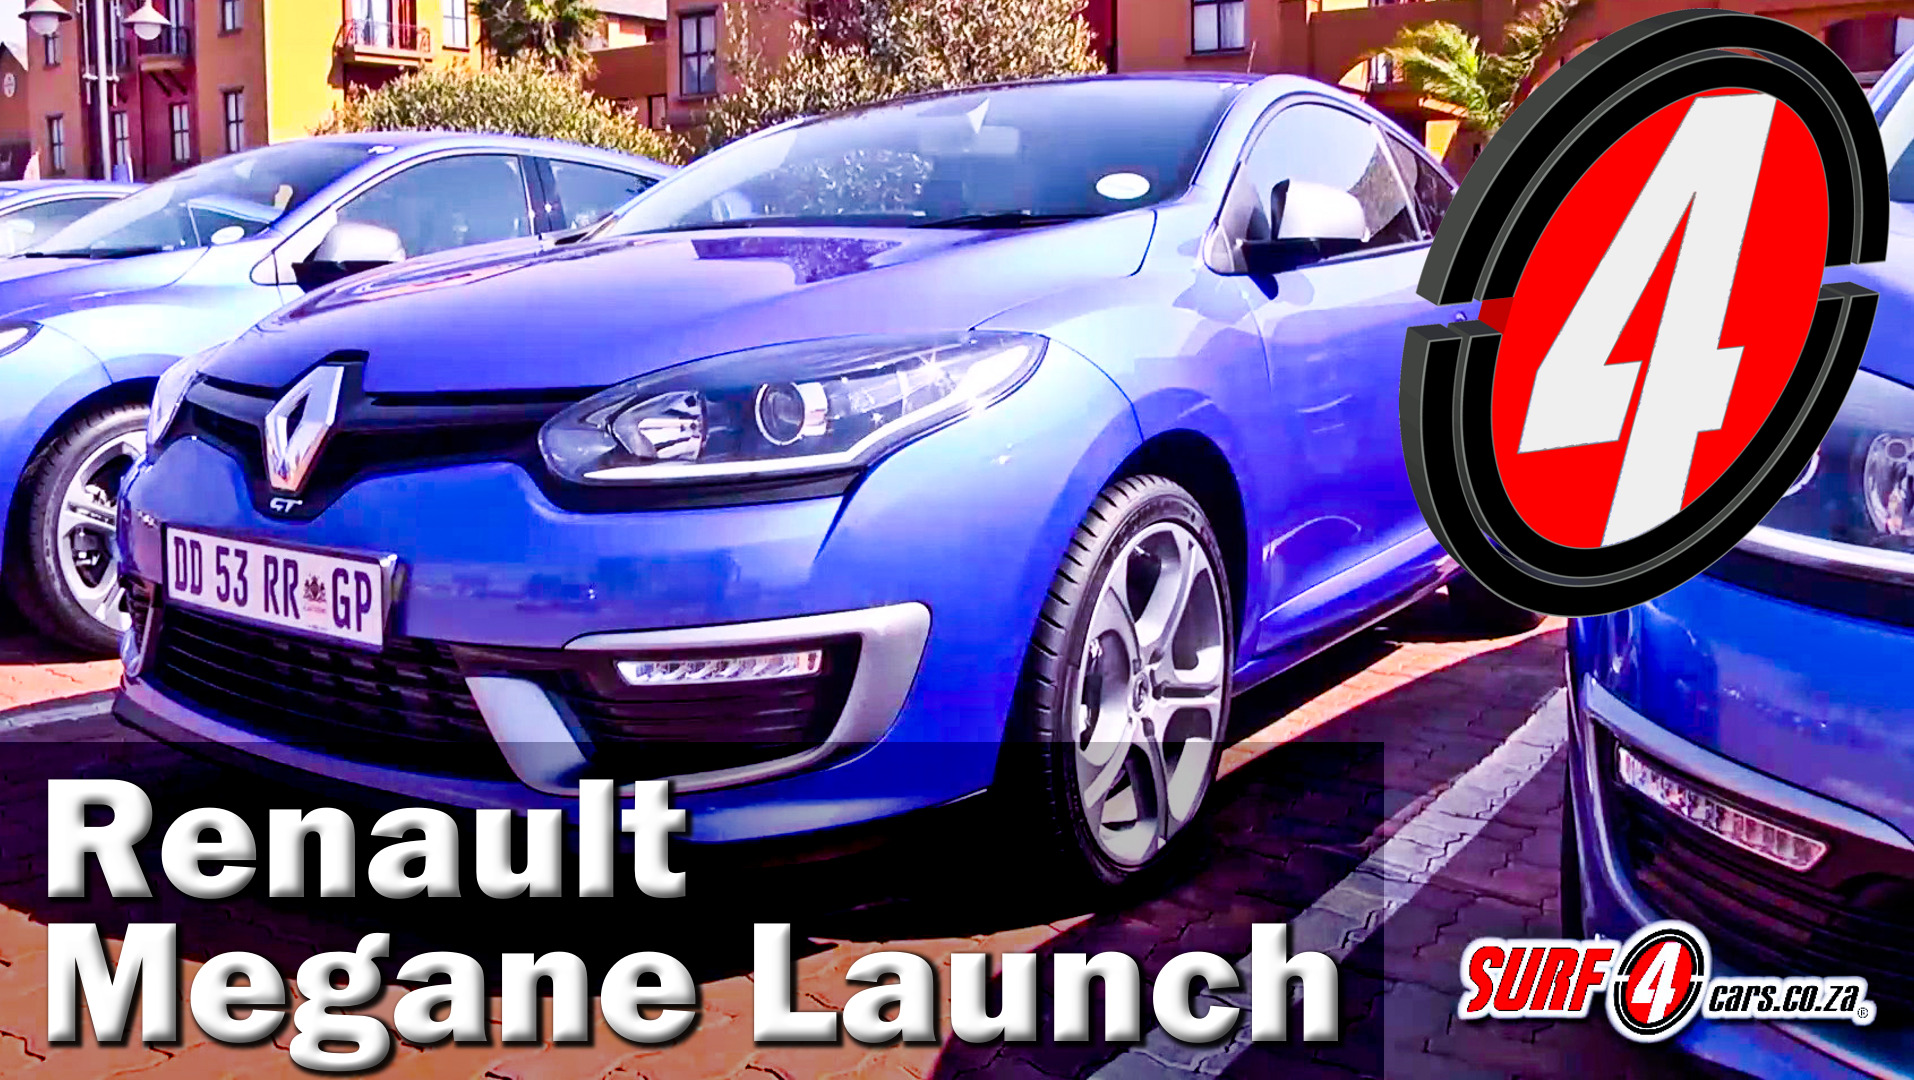 2014 Renault Megane Launch: Featured Video